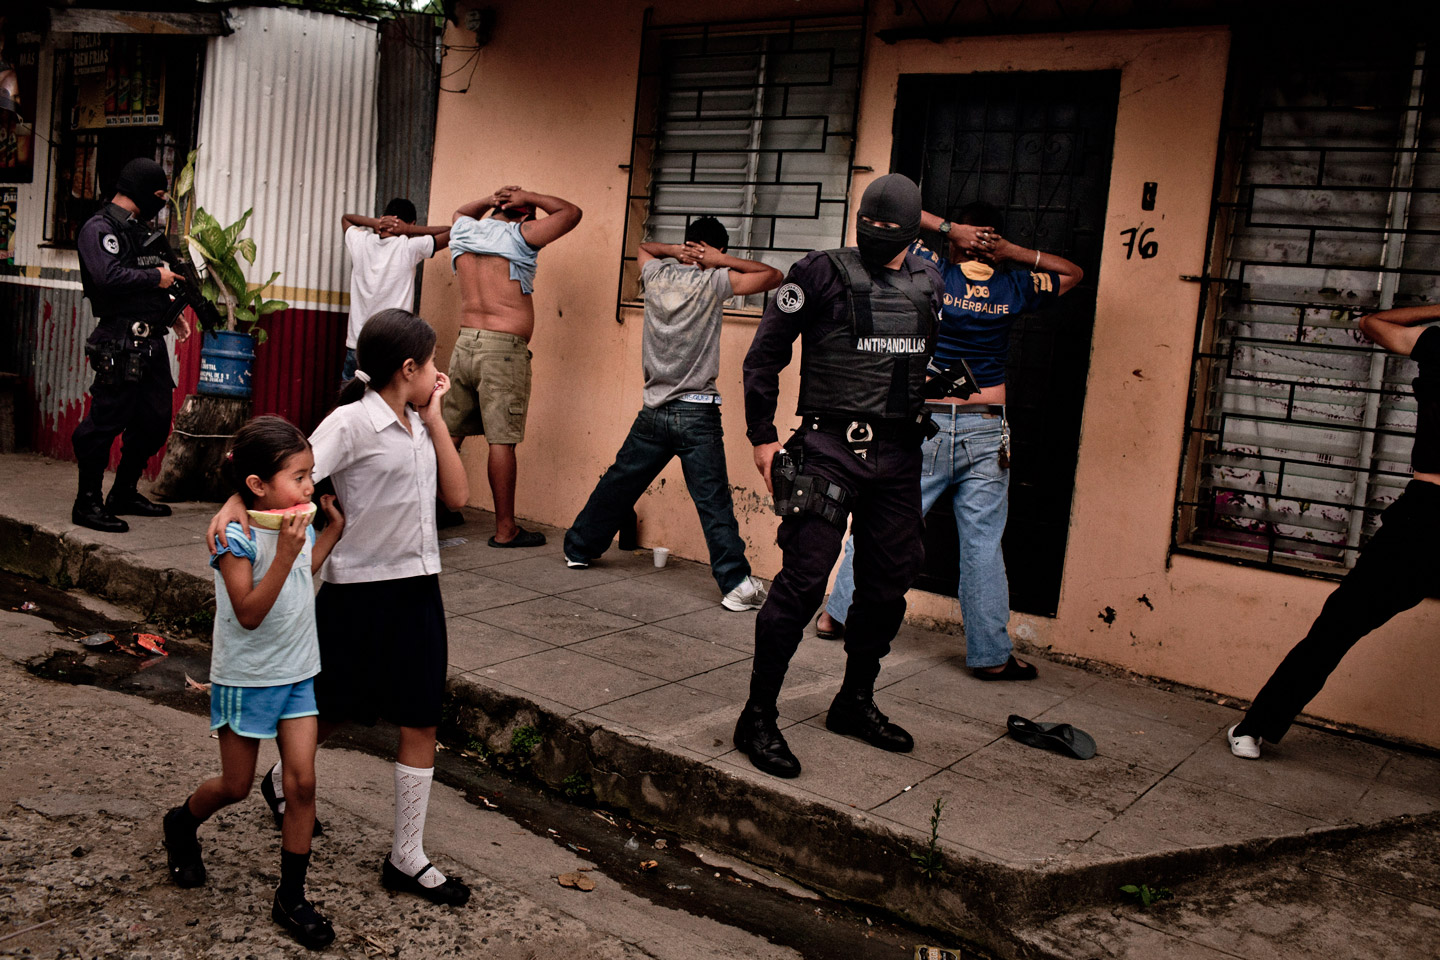 gang violence Get information, facts, and pictures about violence and gangs at encyclopediacom make research projects and school reports about violence and gangs easy with credible articles from our free, online encyclopedia and dictionary.